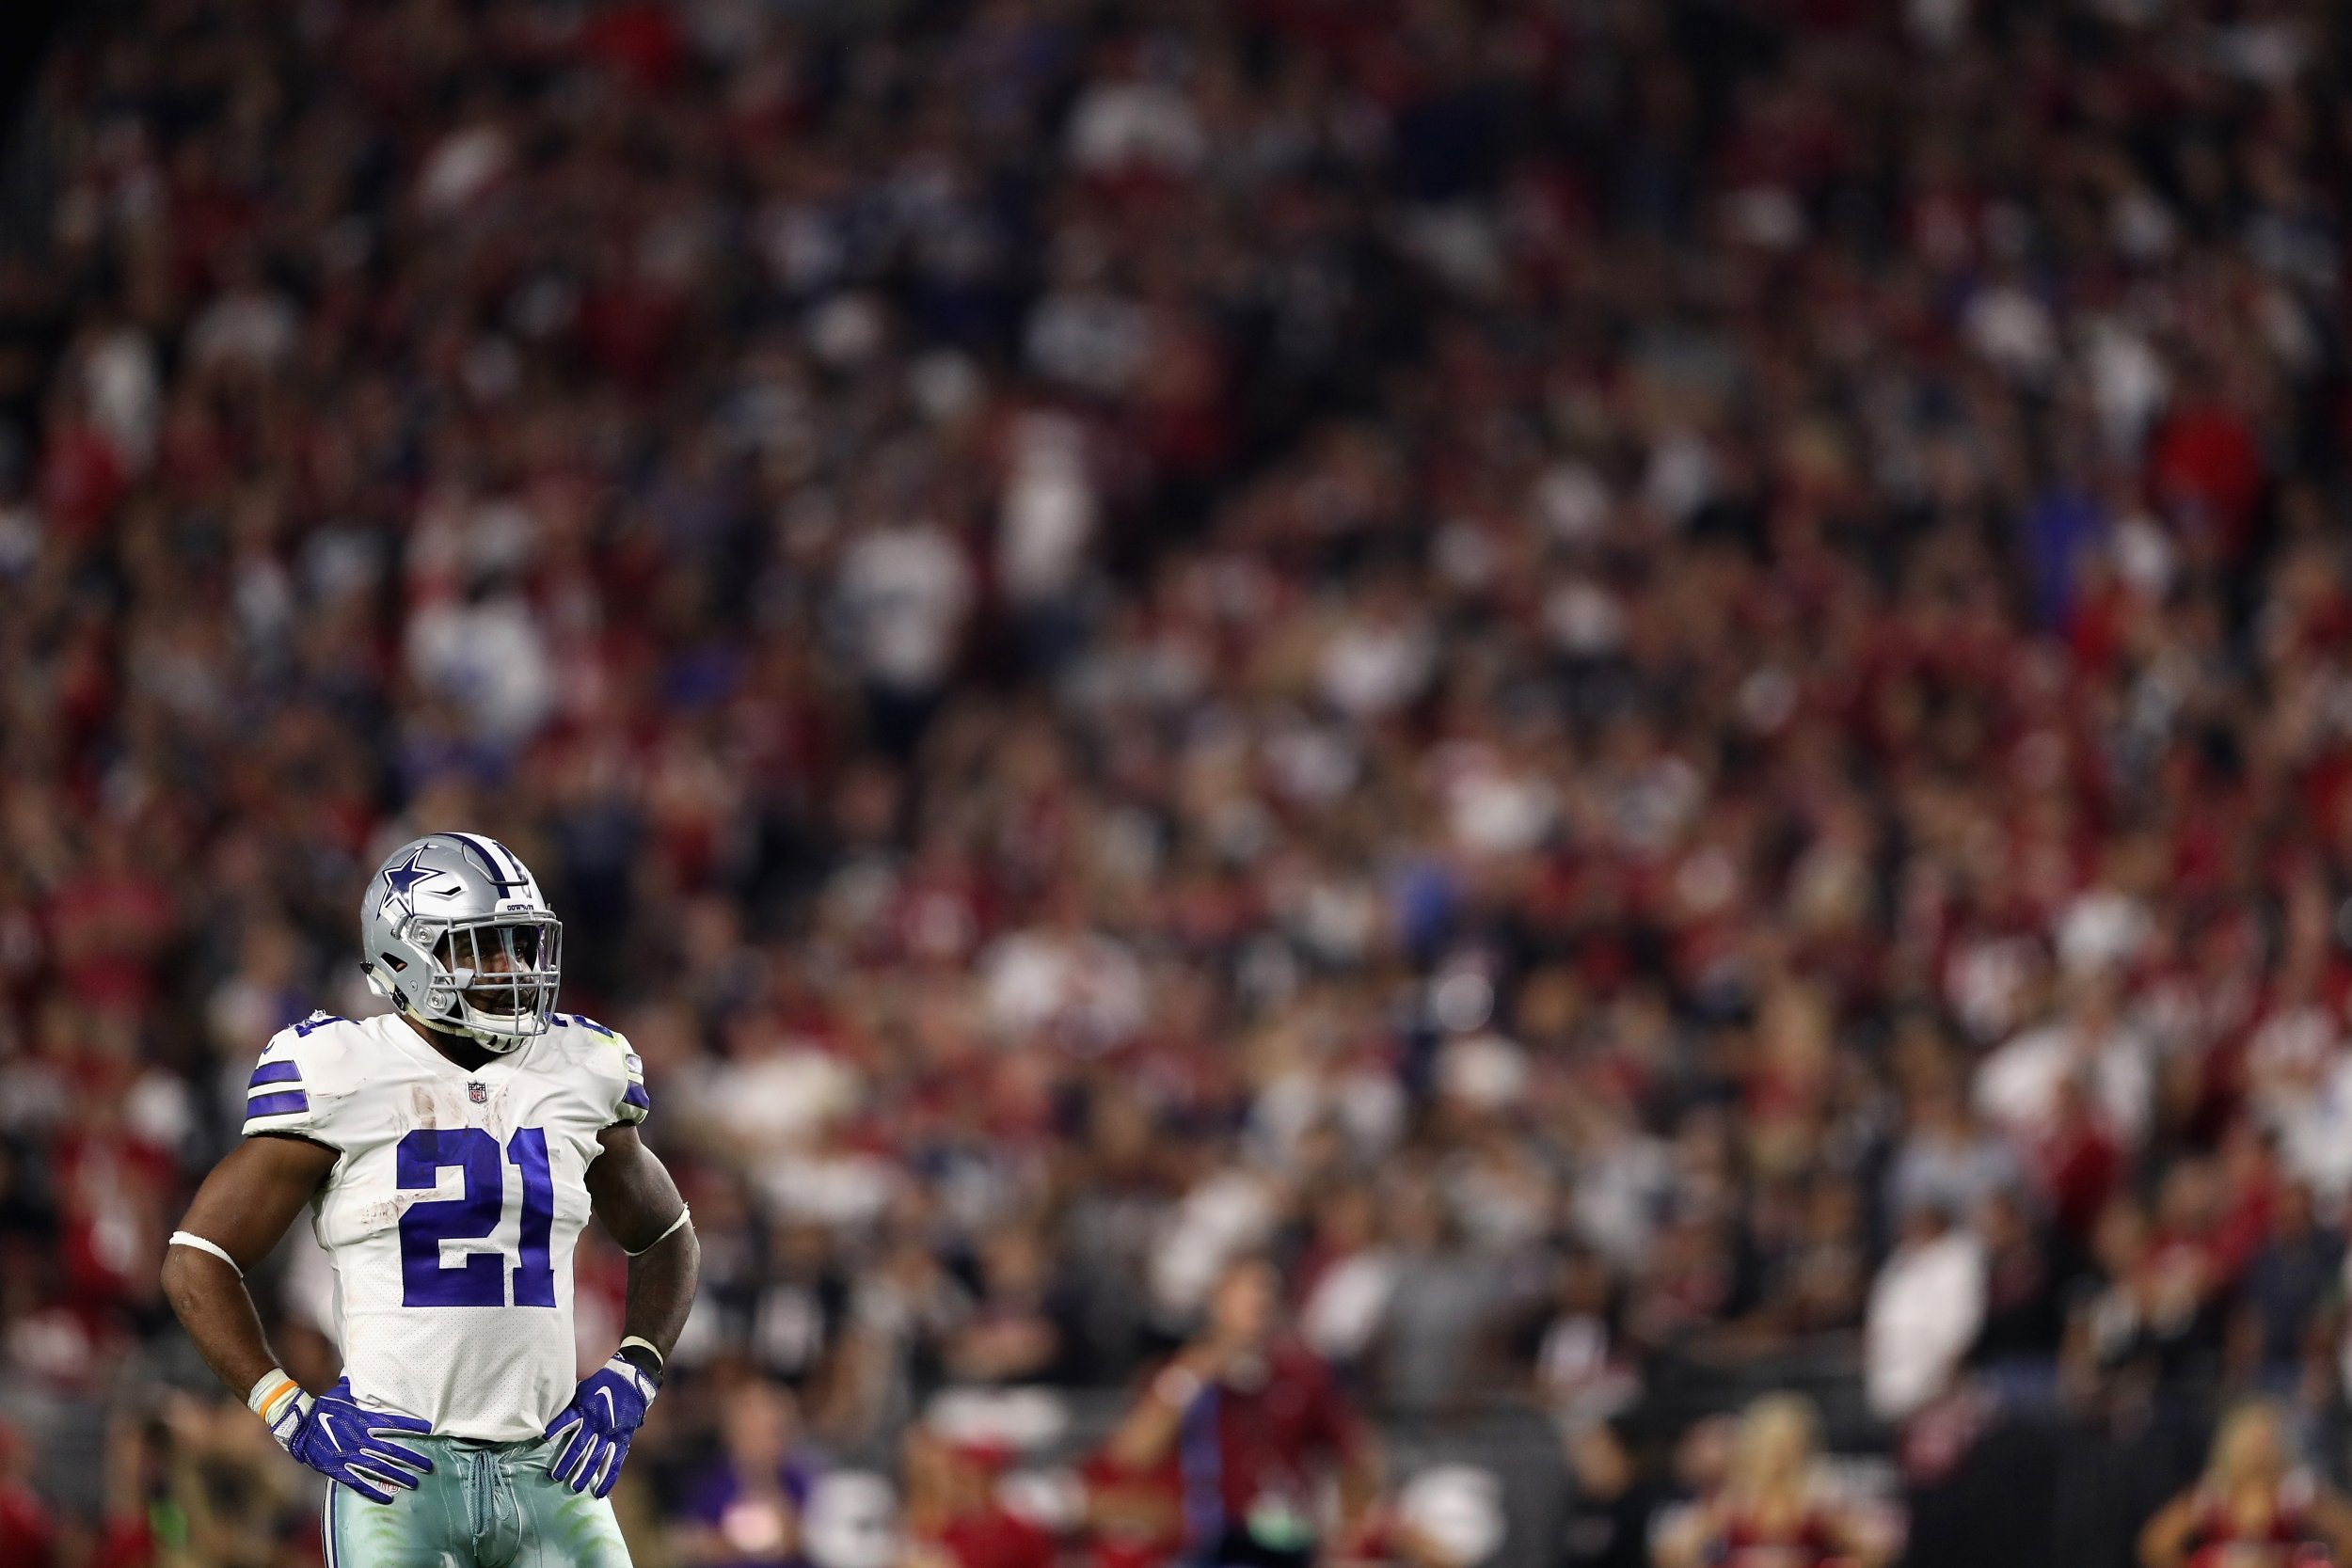 Running back Ezekiel Elliott of the Dallas Cowboys at the University of Phoenix Stadium, Glendale, September 25.